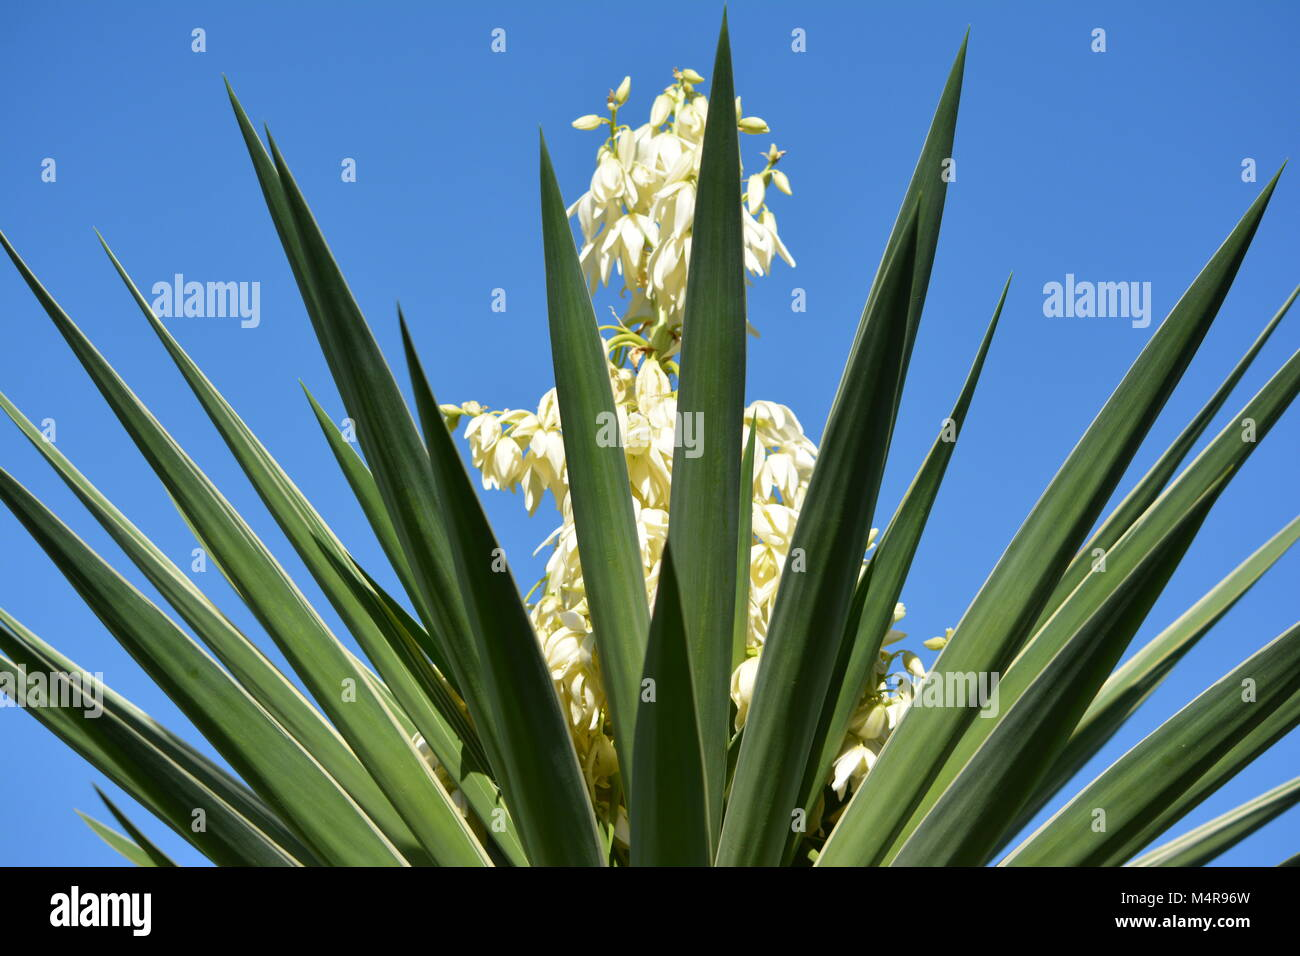 Yucca in in bloom displaying it's creamy white flowers, NSW Mid North Coast, Australia - Stock Image